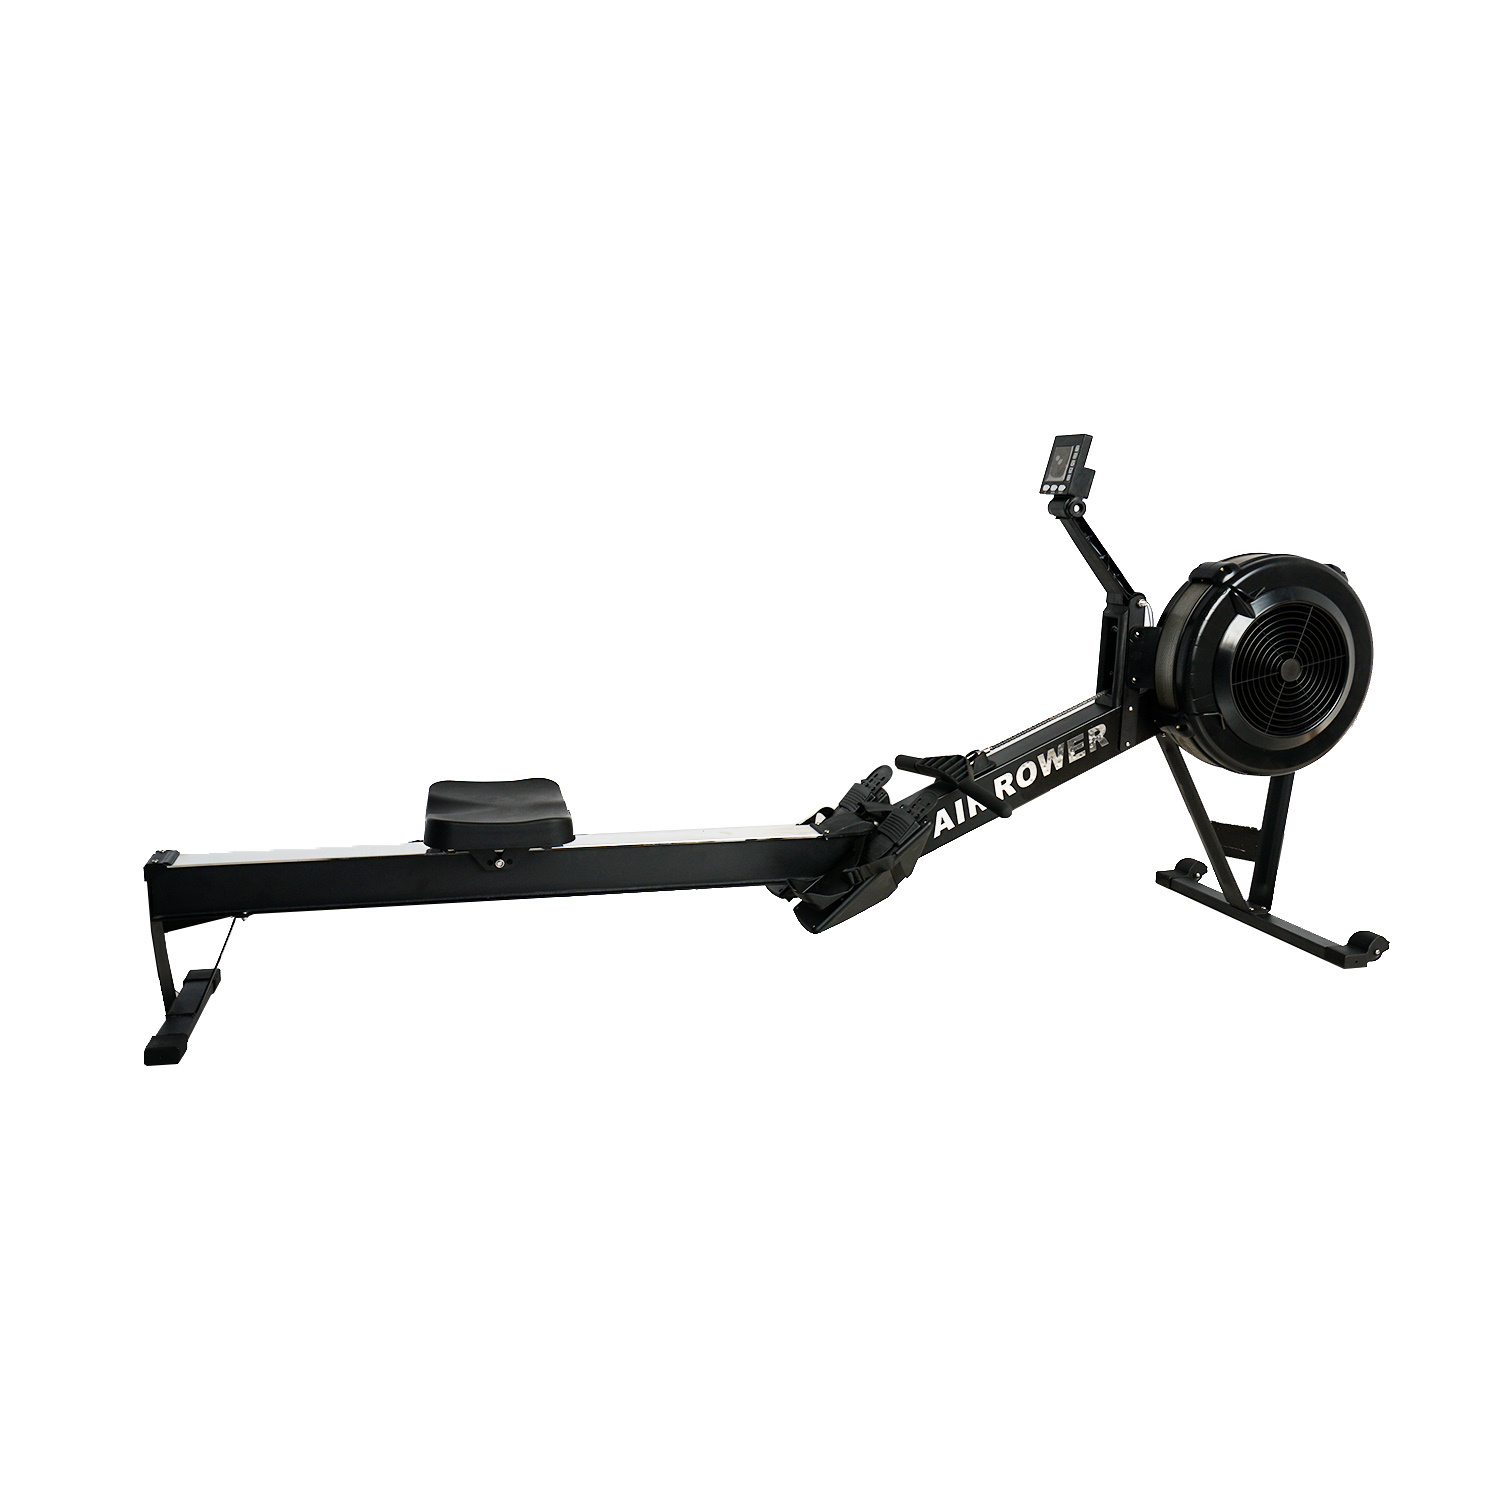 China Air Rower Fitness Rowing Machine D Model - China Concept 2 Rowing  Machine and Concept 2 Rower price